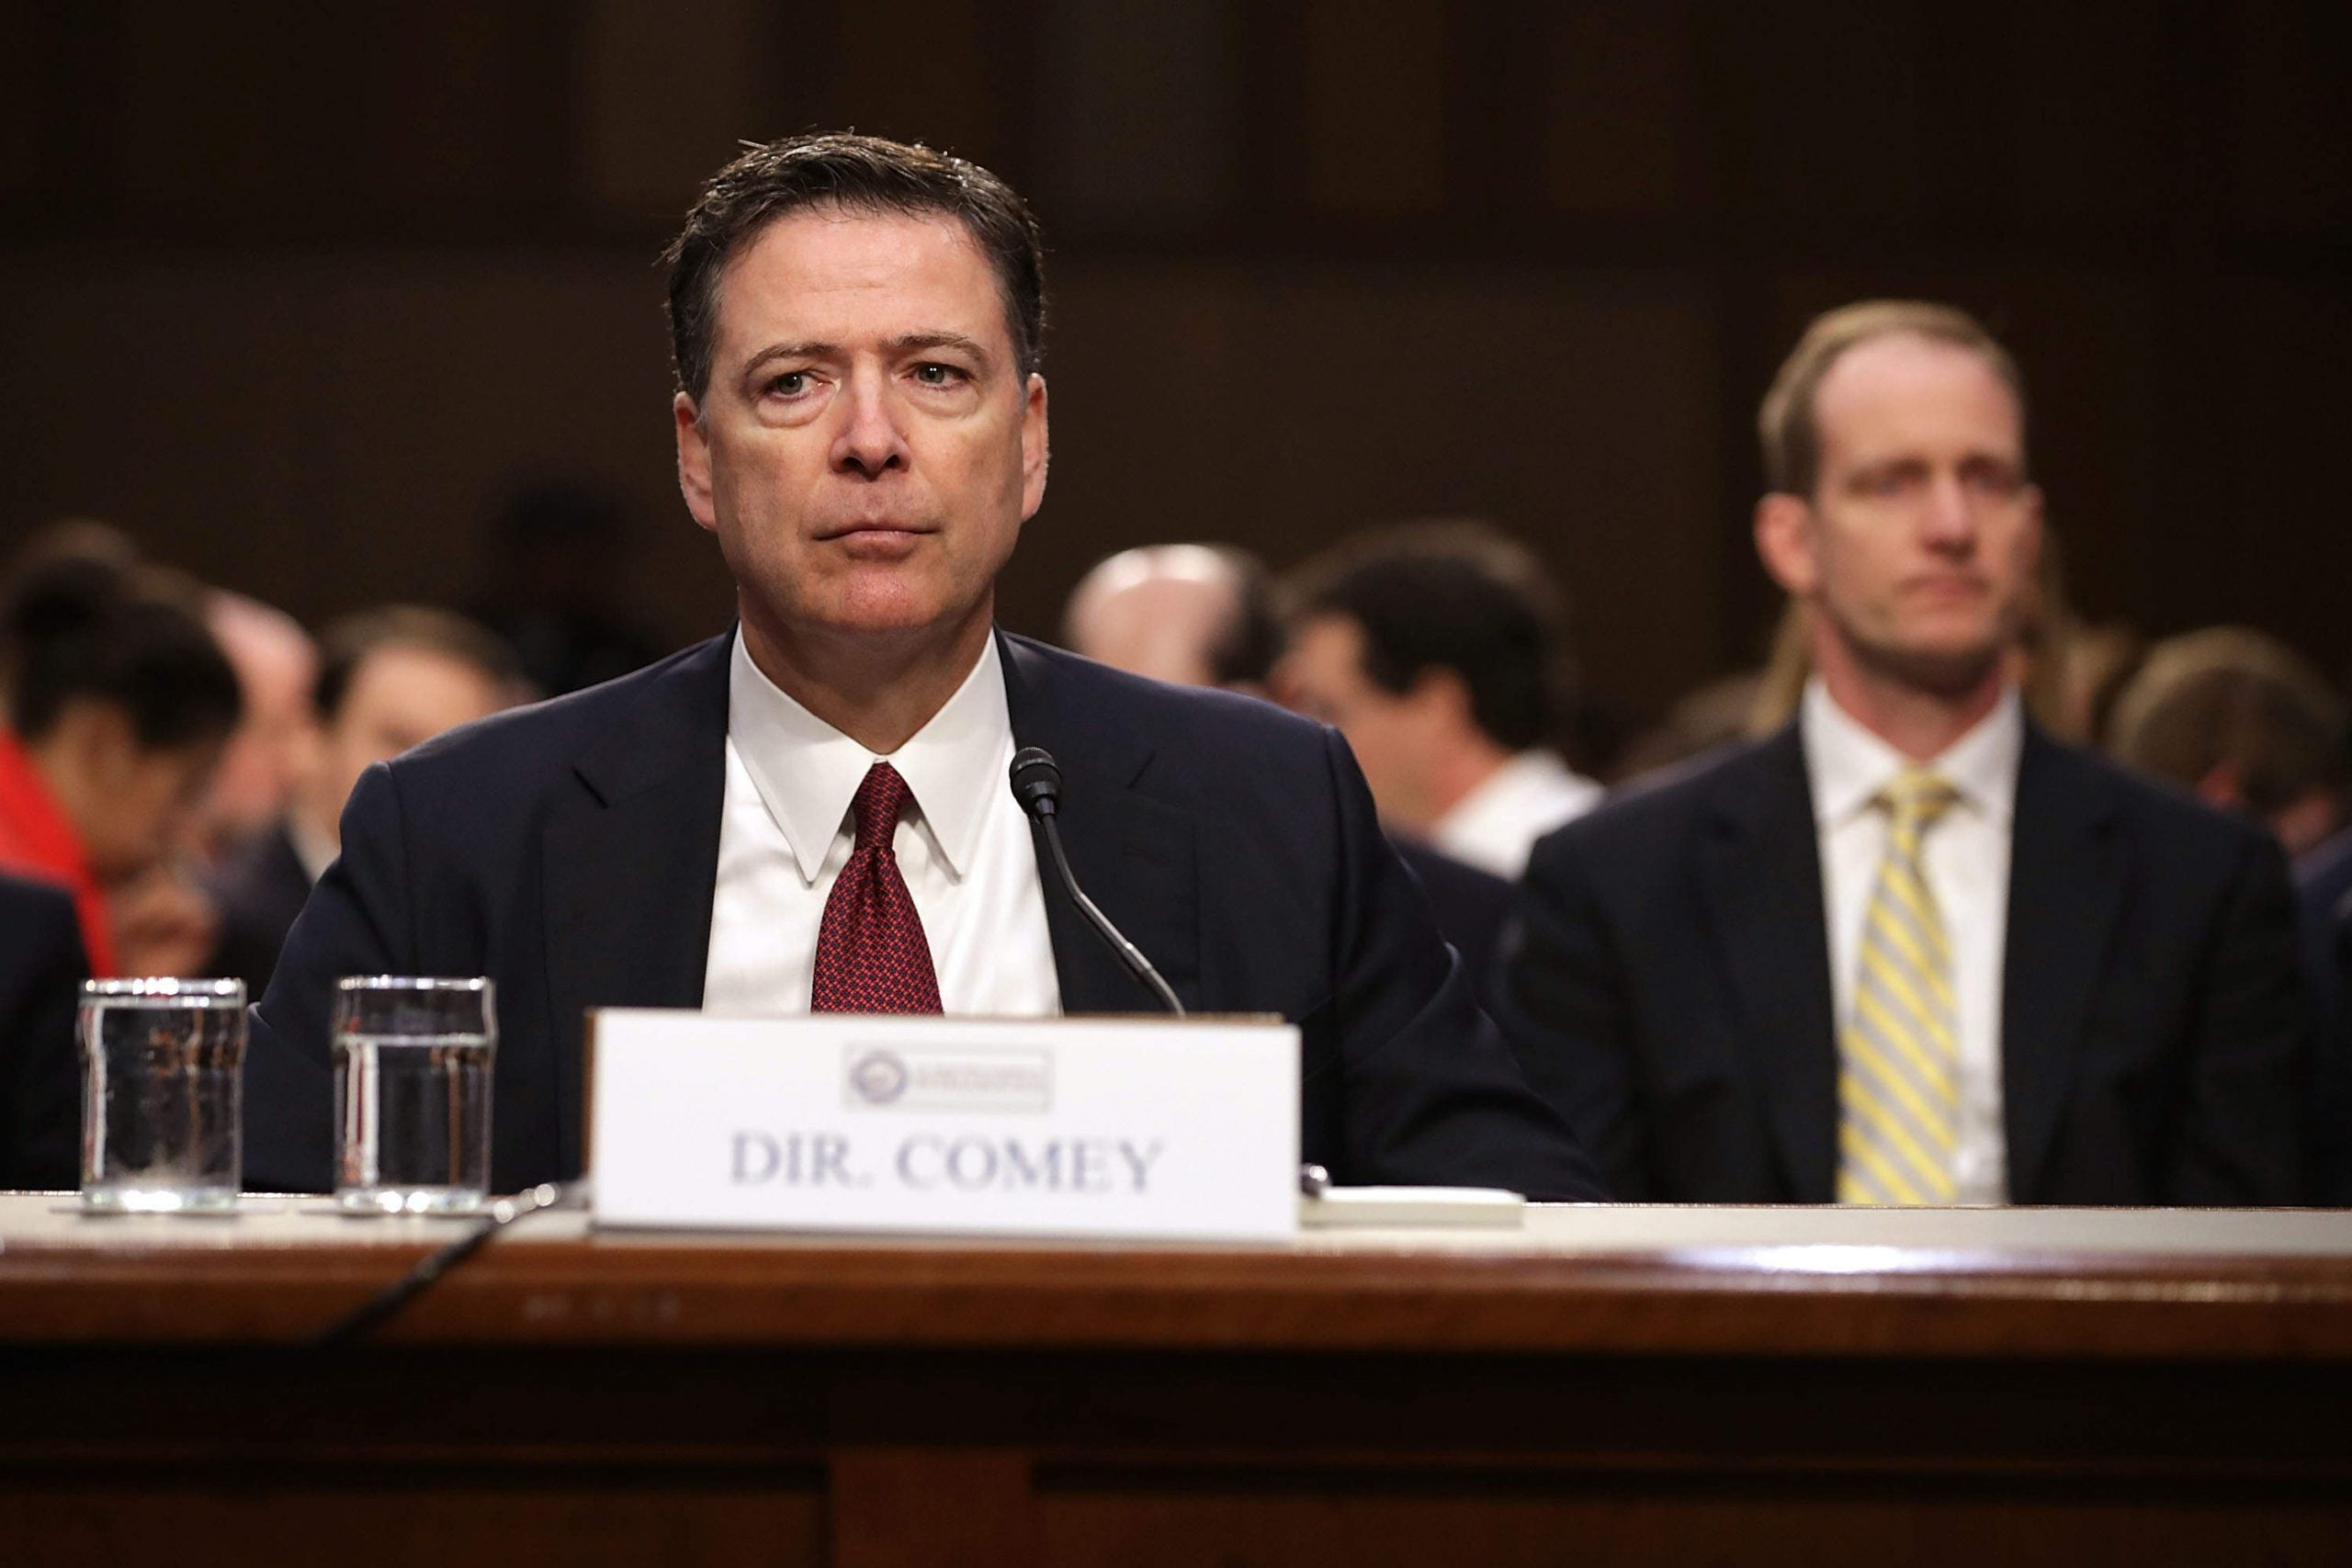 James Comey's testimony lived up to the billing, but won't sink Donald Trump